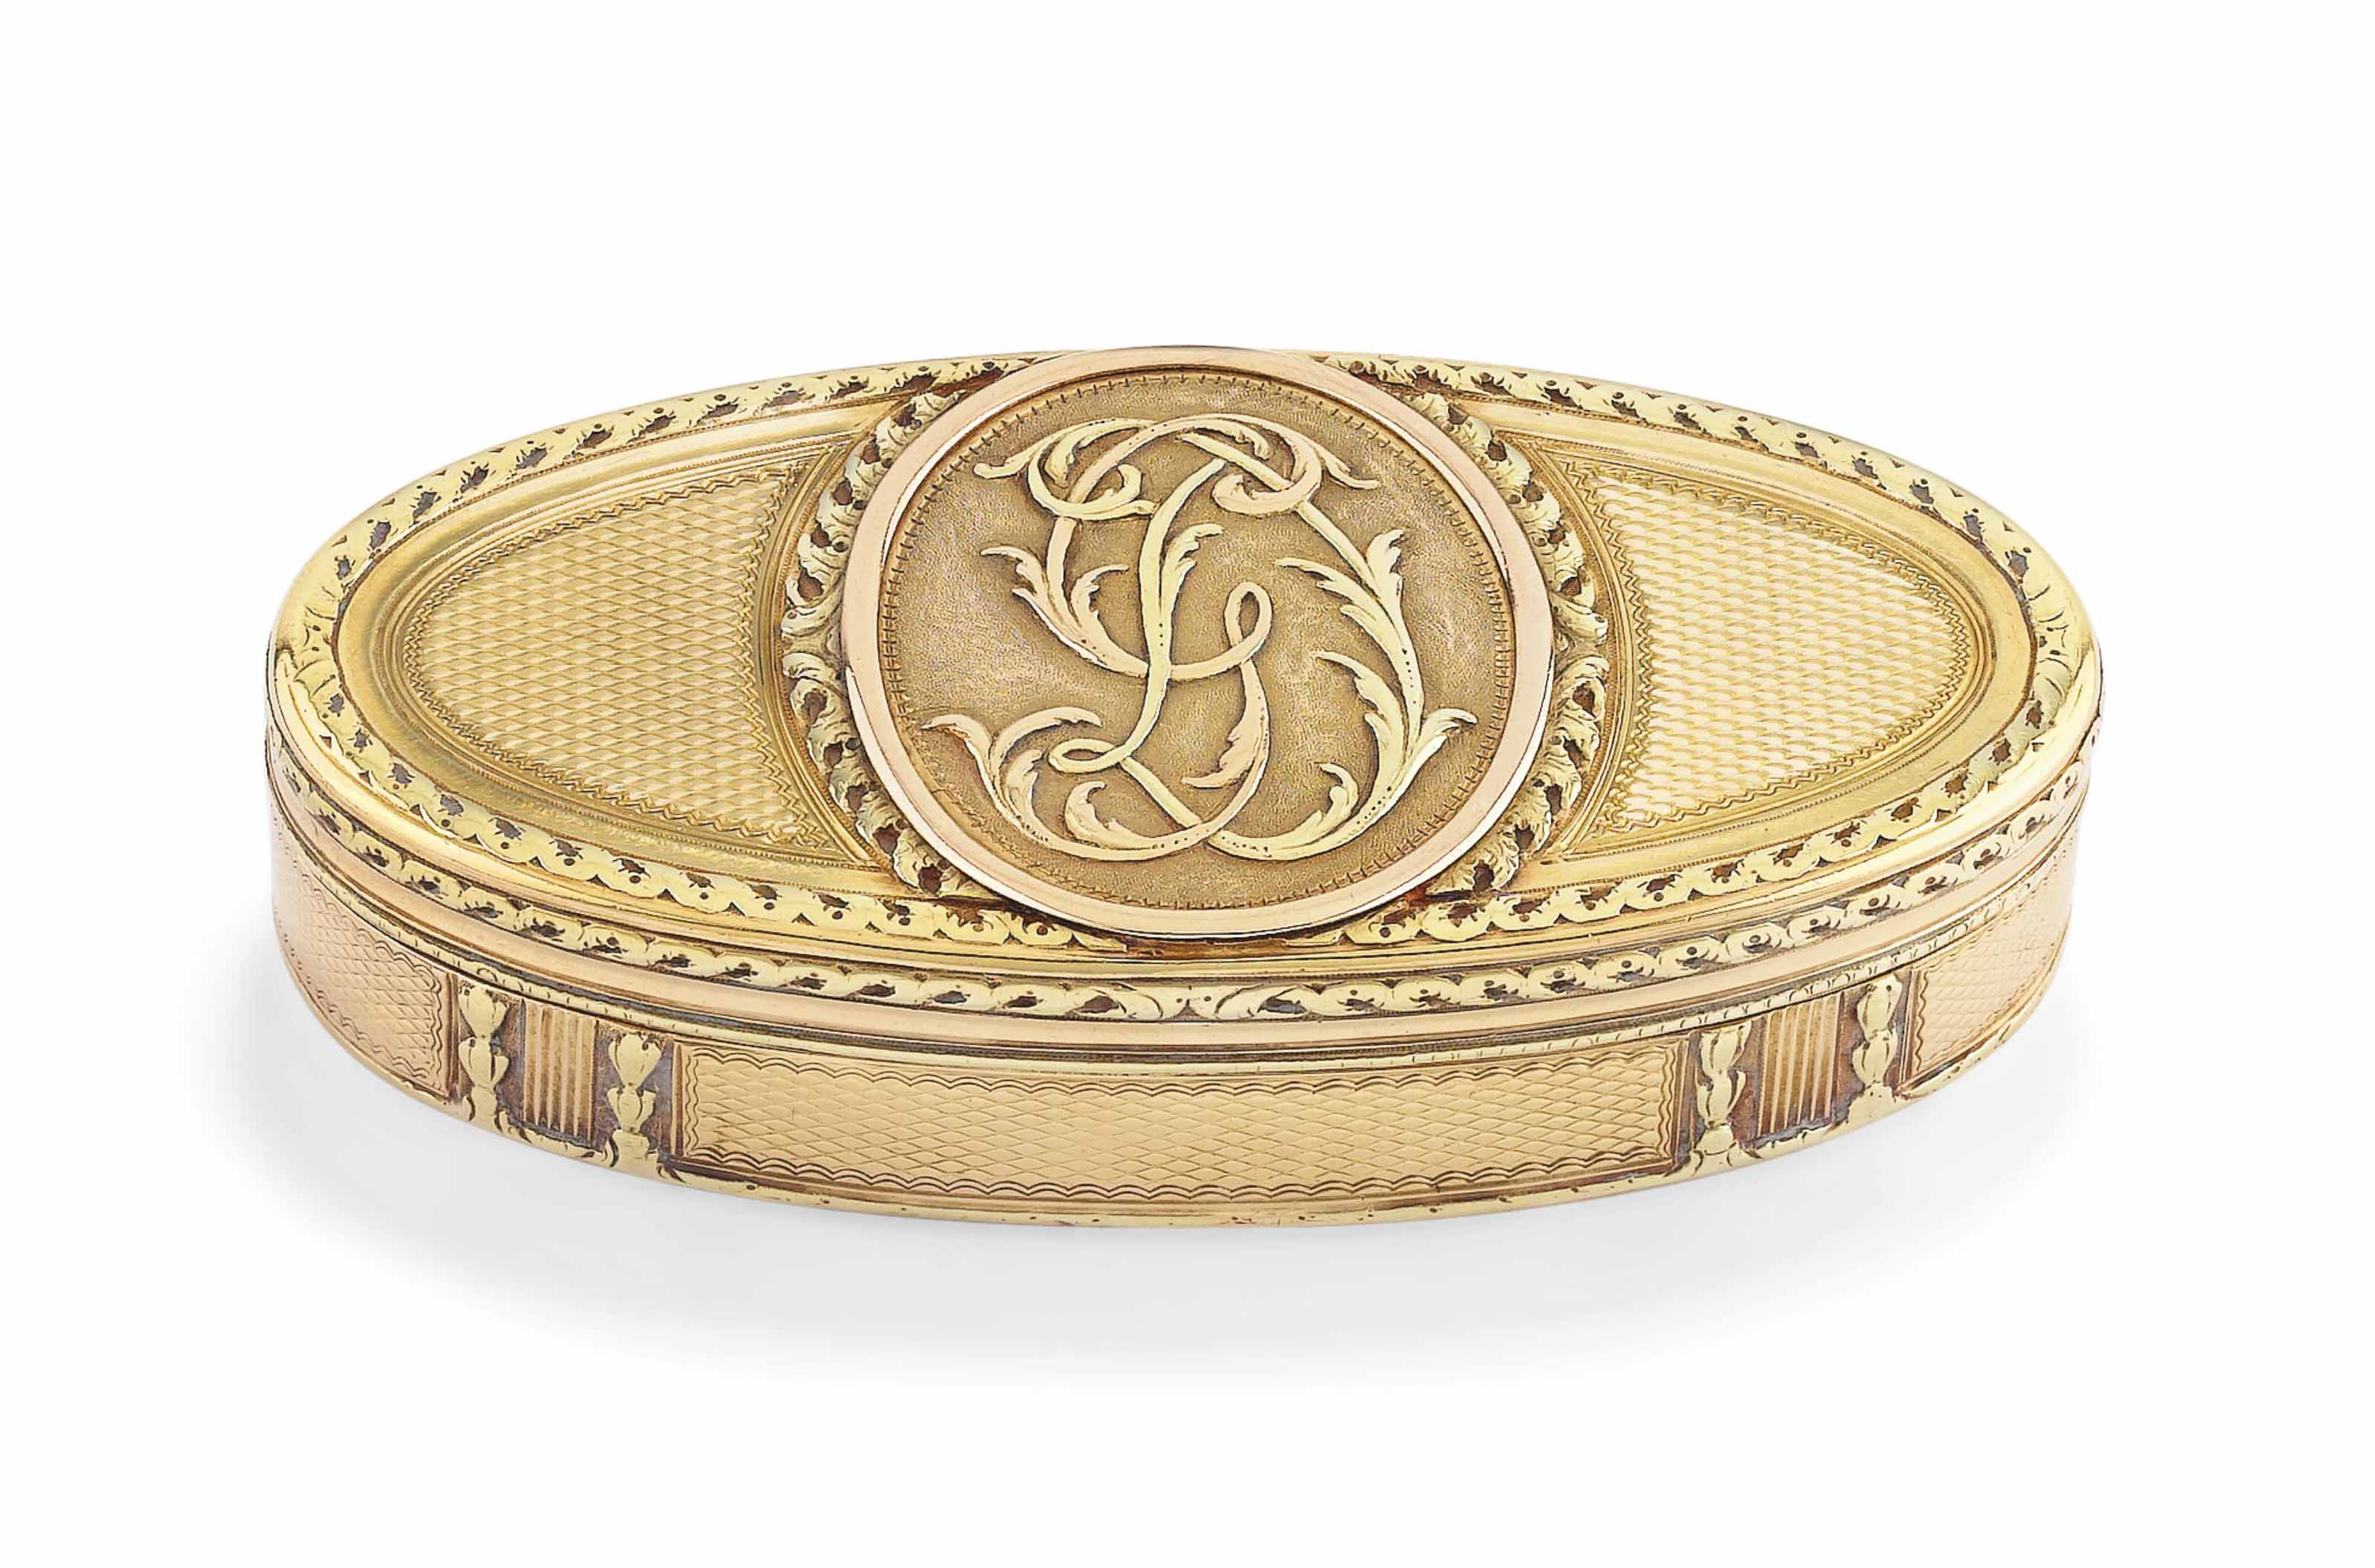 A LOUIS XVI VARI-COLOUR GOLD SNUFF-BOX